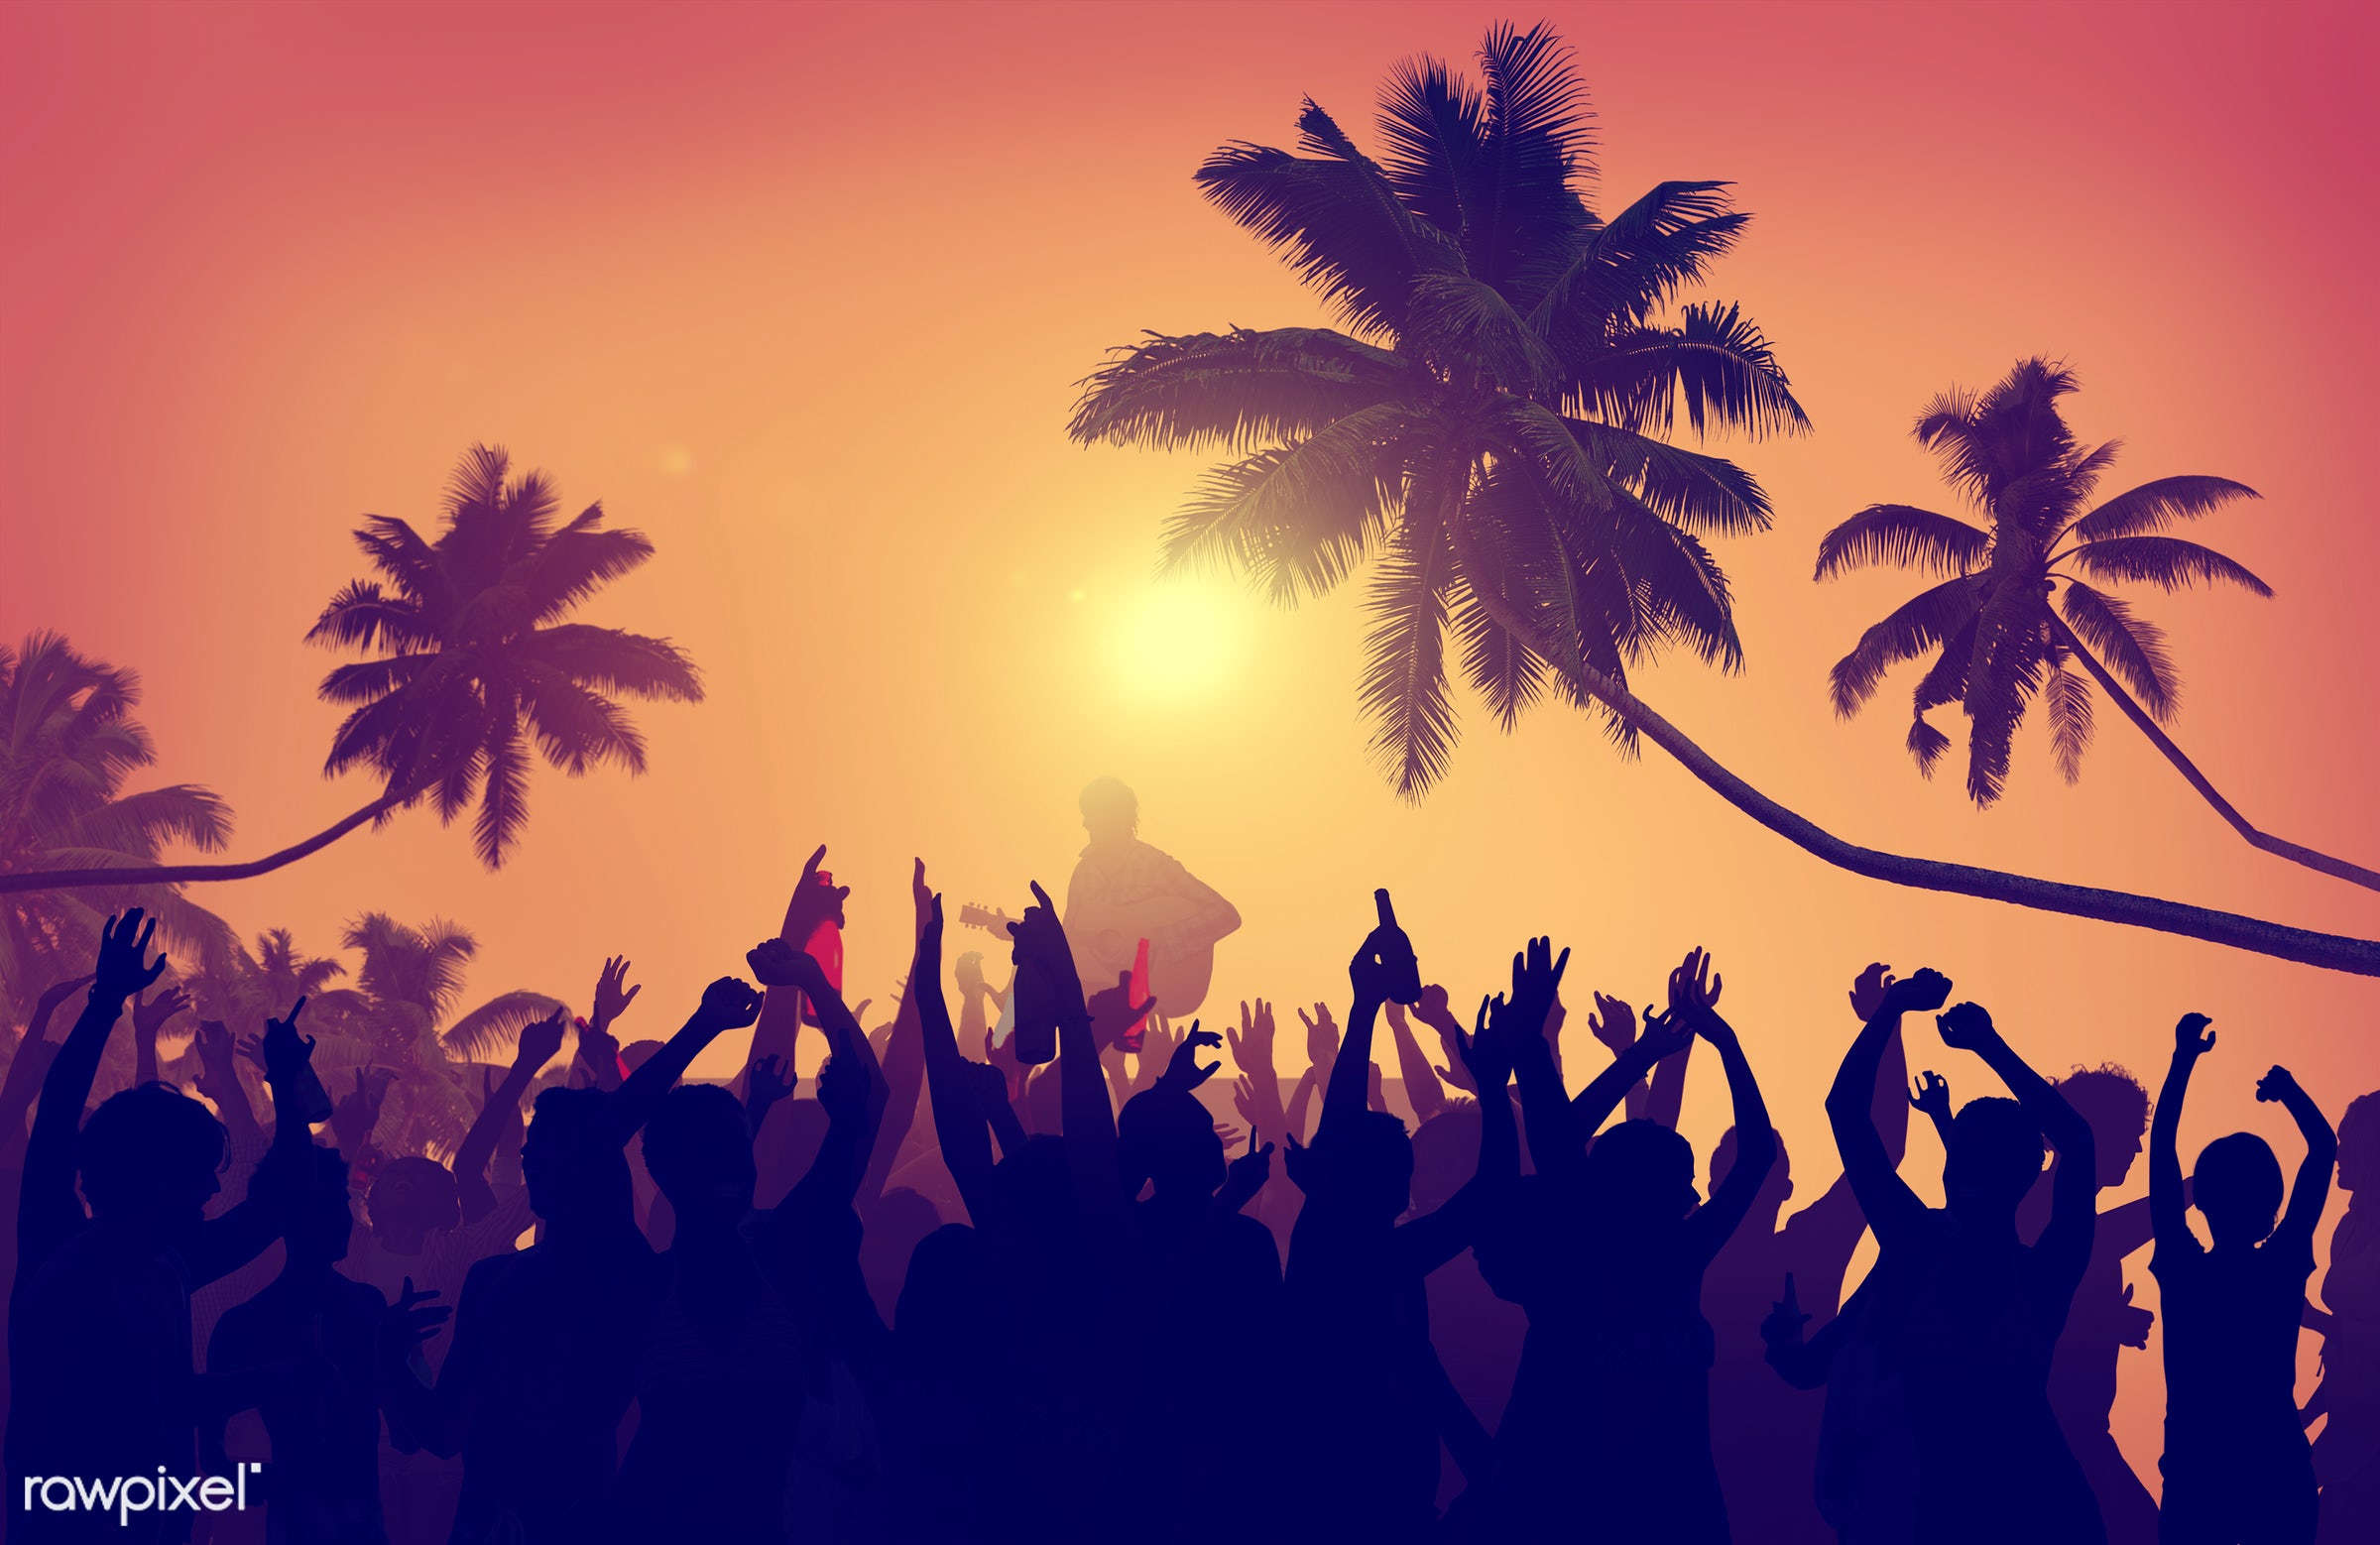 adolescence, audience, back lit, carefree, celebration, cheerful, coconut palm tree, communication, community, concert,...